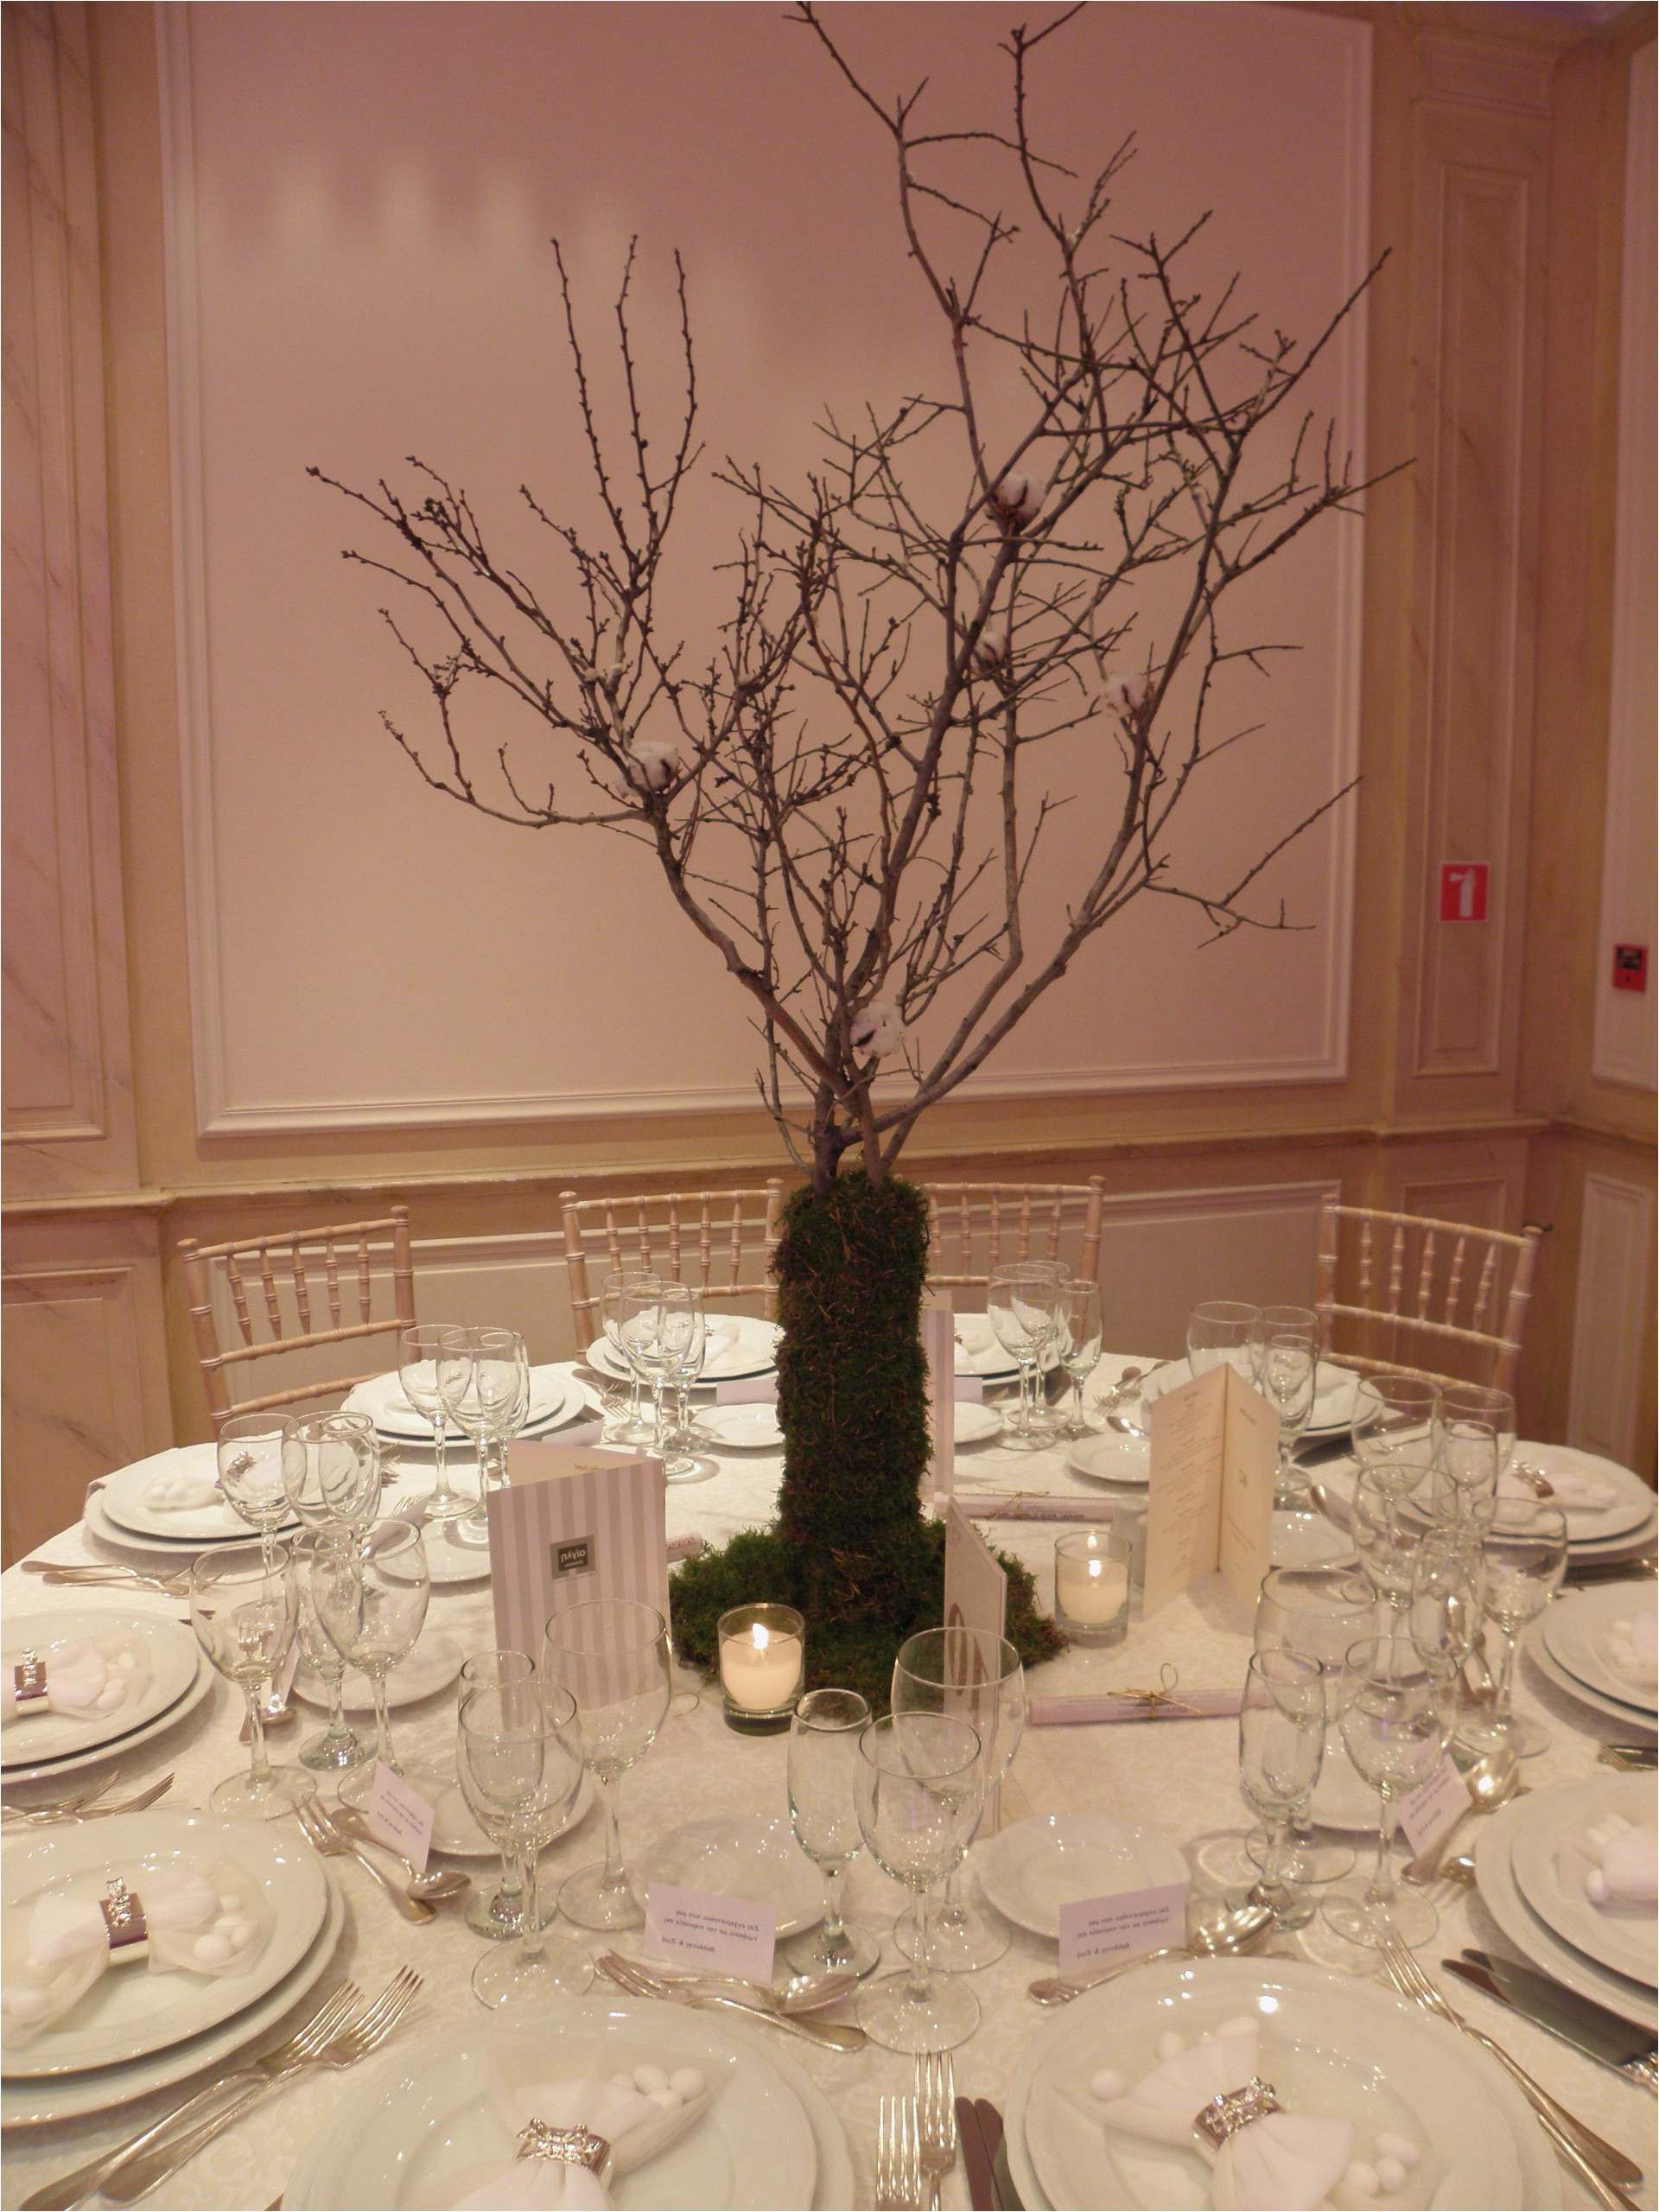 long branches for vases of wedding reception centerpieces concept tall vase centerpiece ideas in wedding reception centerpieces new design flower arrangements for wedding reception tables lovely flower table opinion